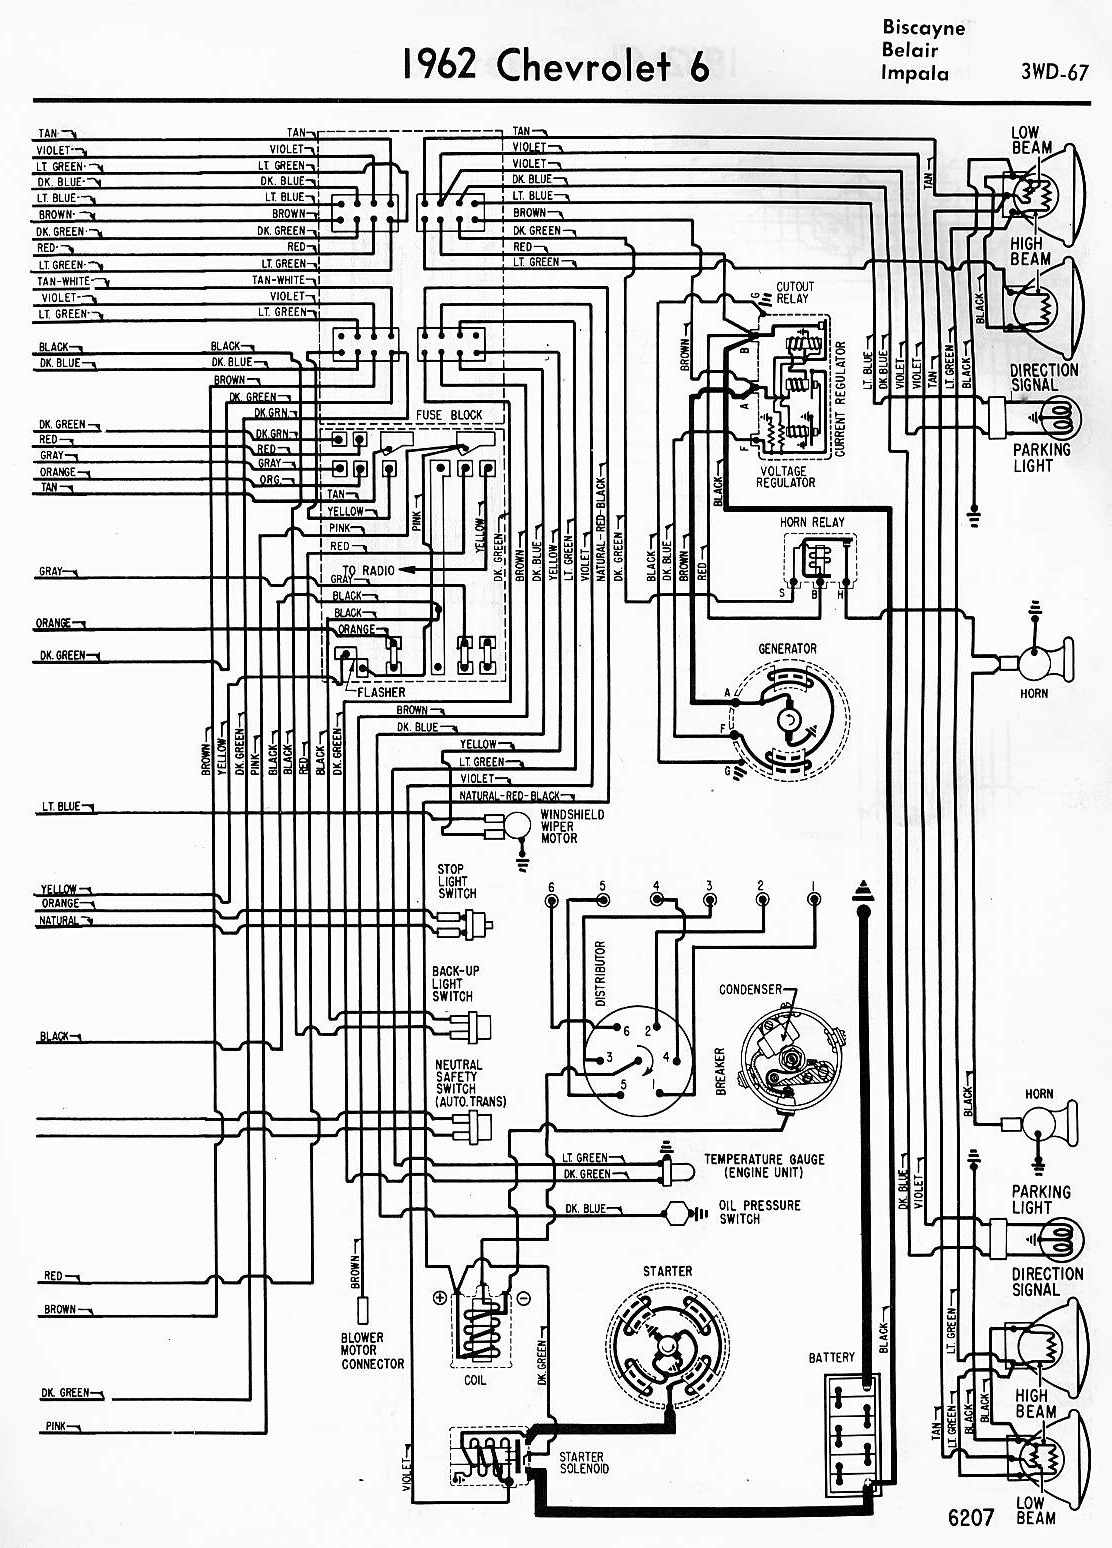 Electrical Wiring Diagram Of  Chevrolet  All About Wiring - 1964 chrysler newport wiring diagram